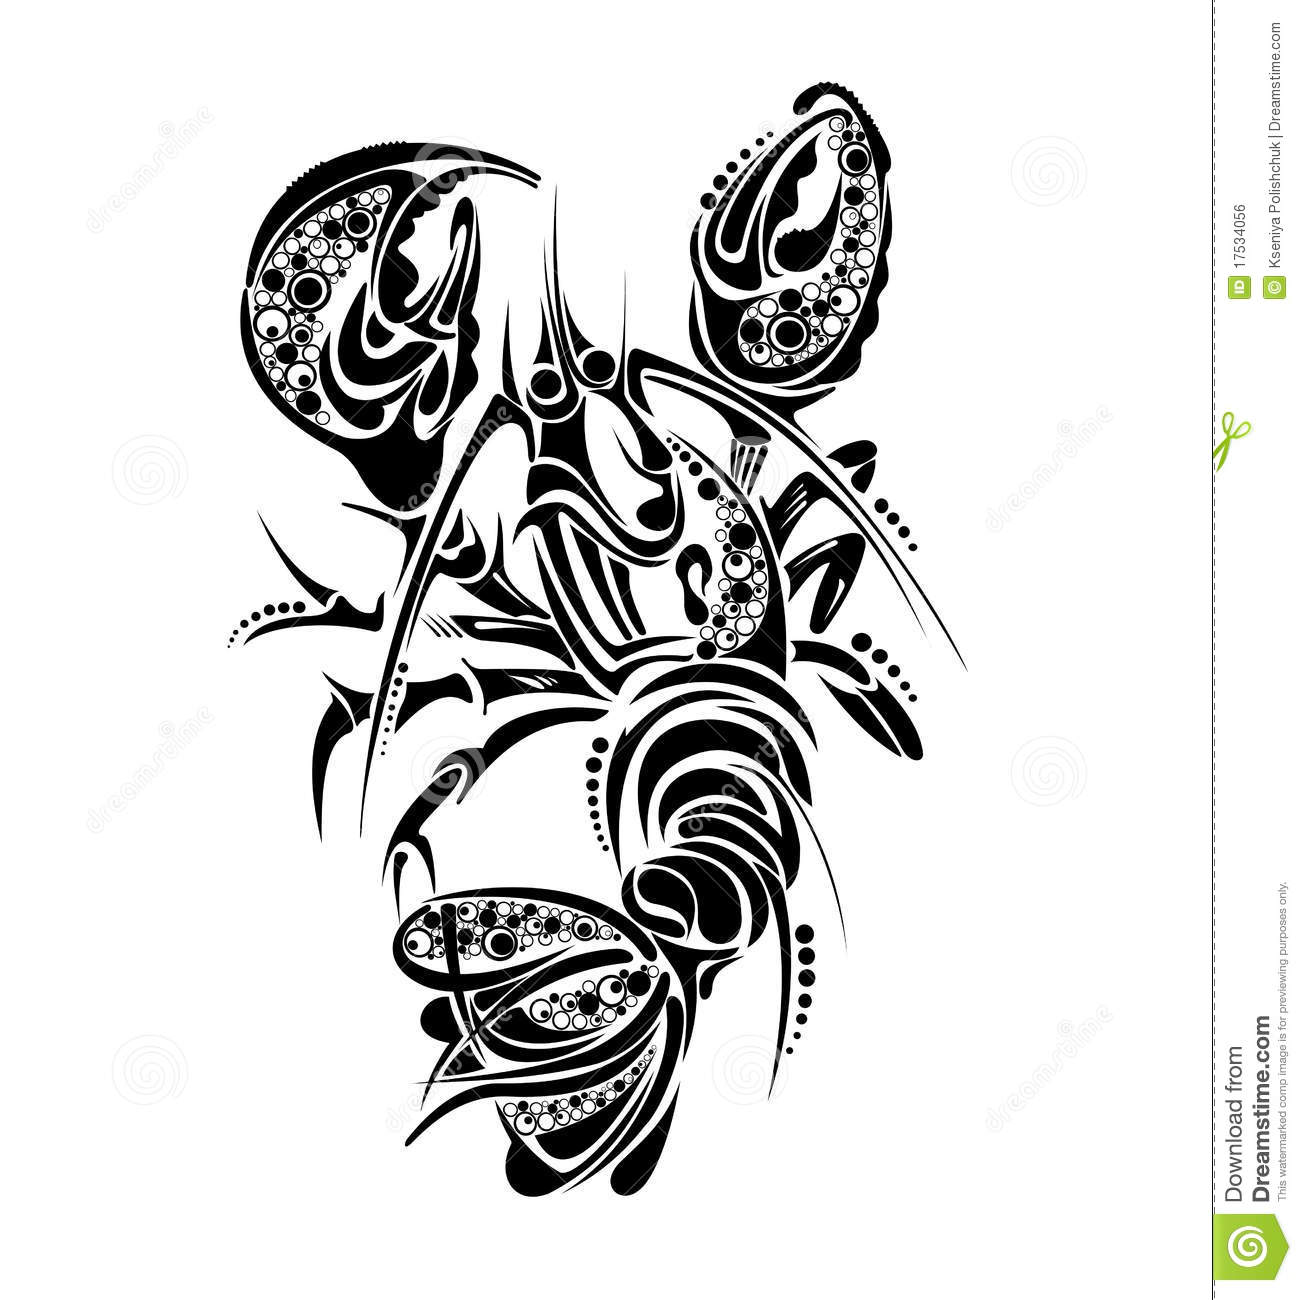 Zodiac signs cancer tattoo design stock vector for Tattoo horoscope signs